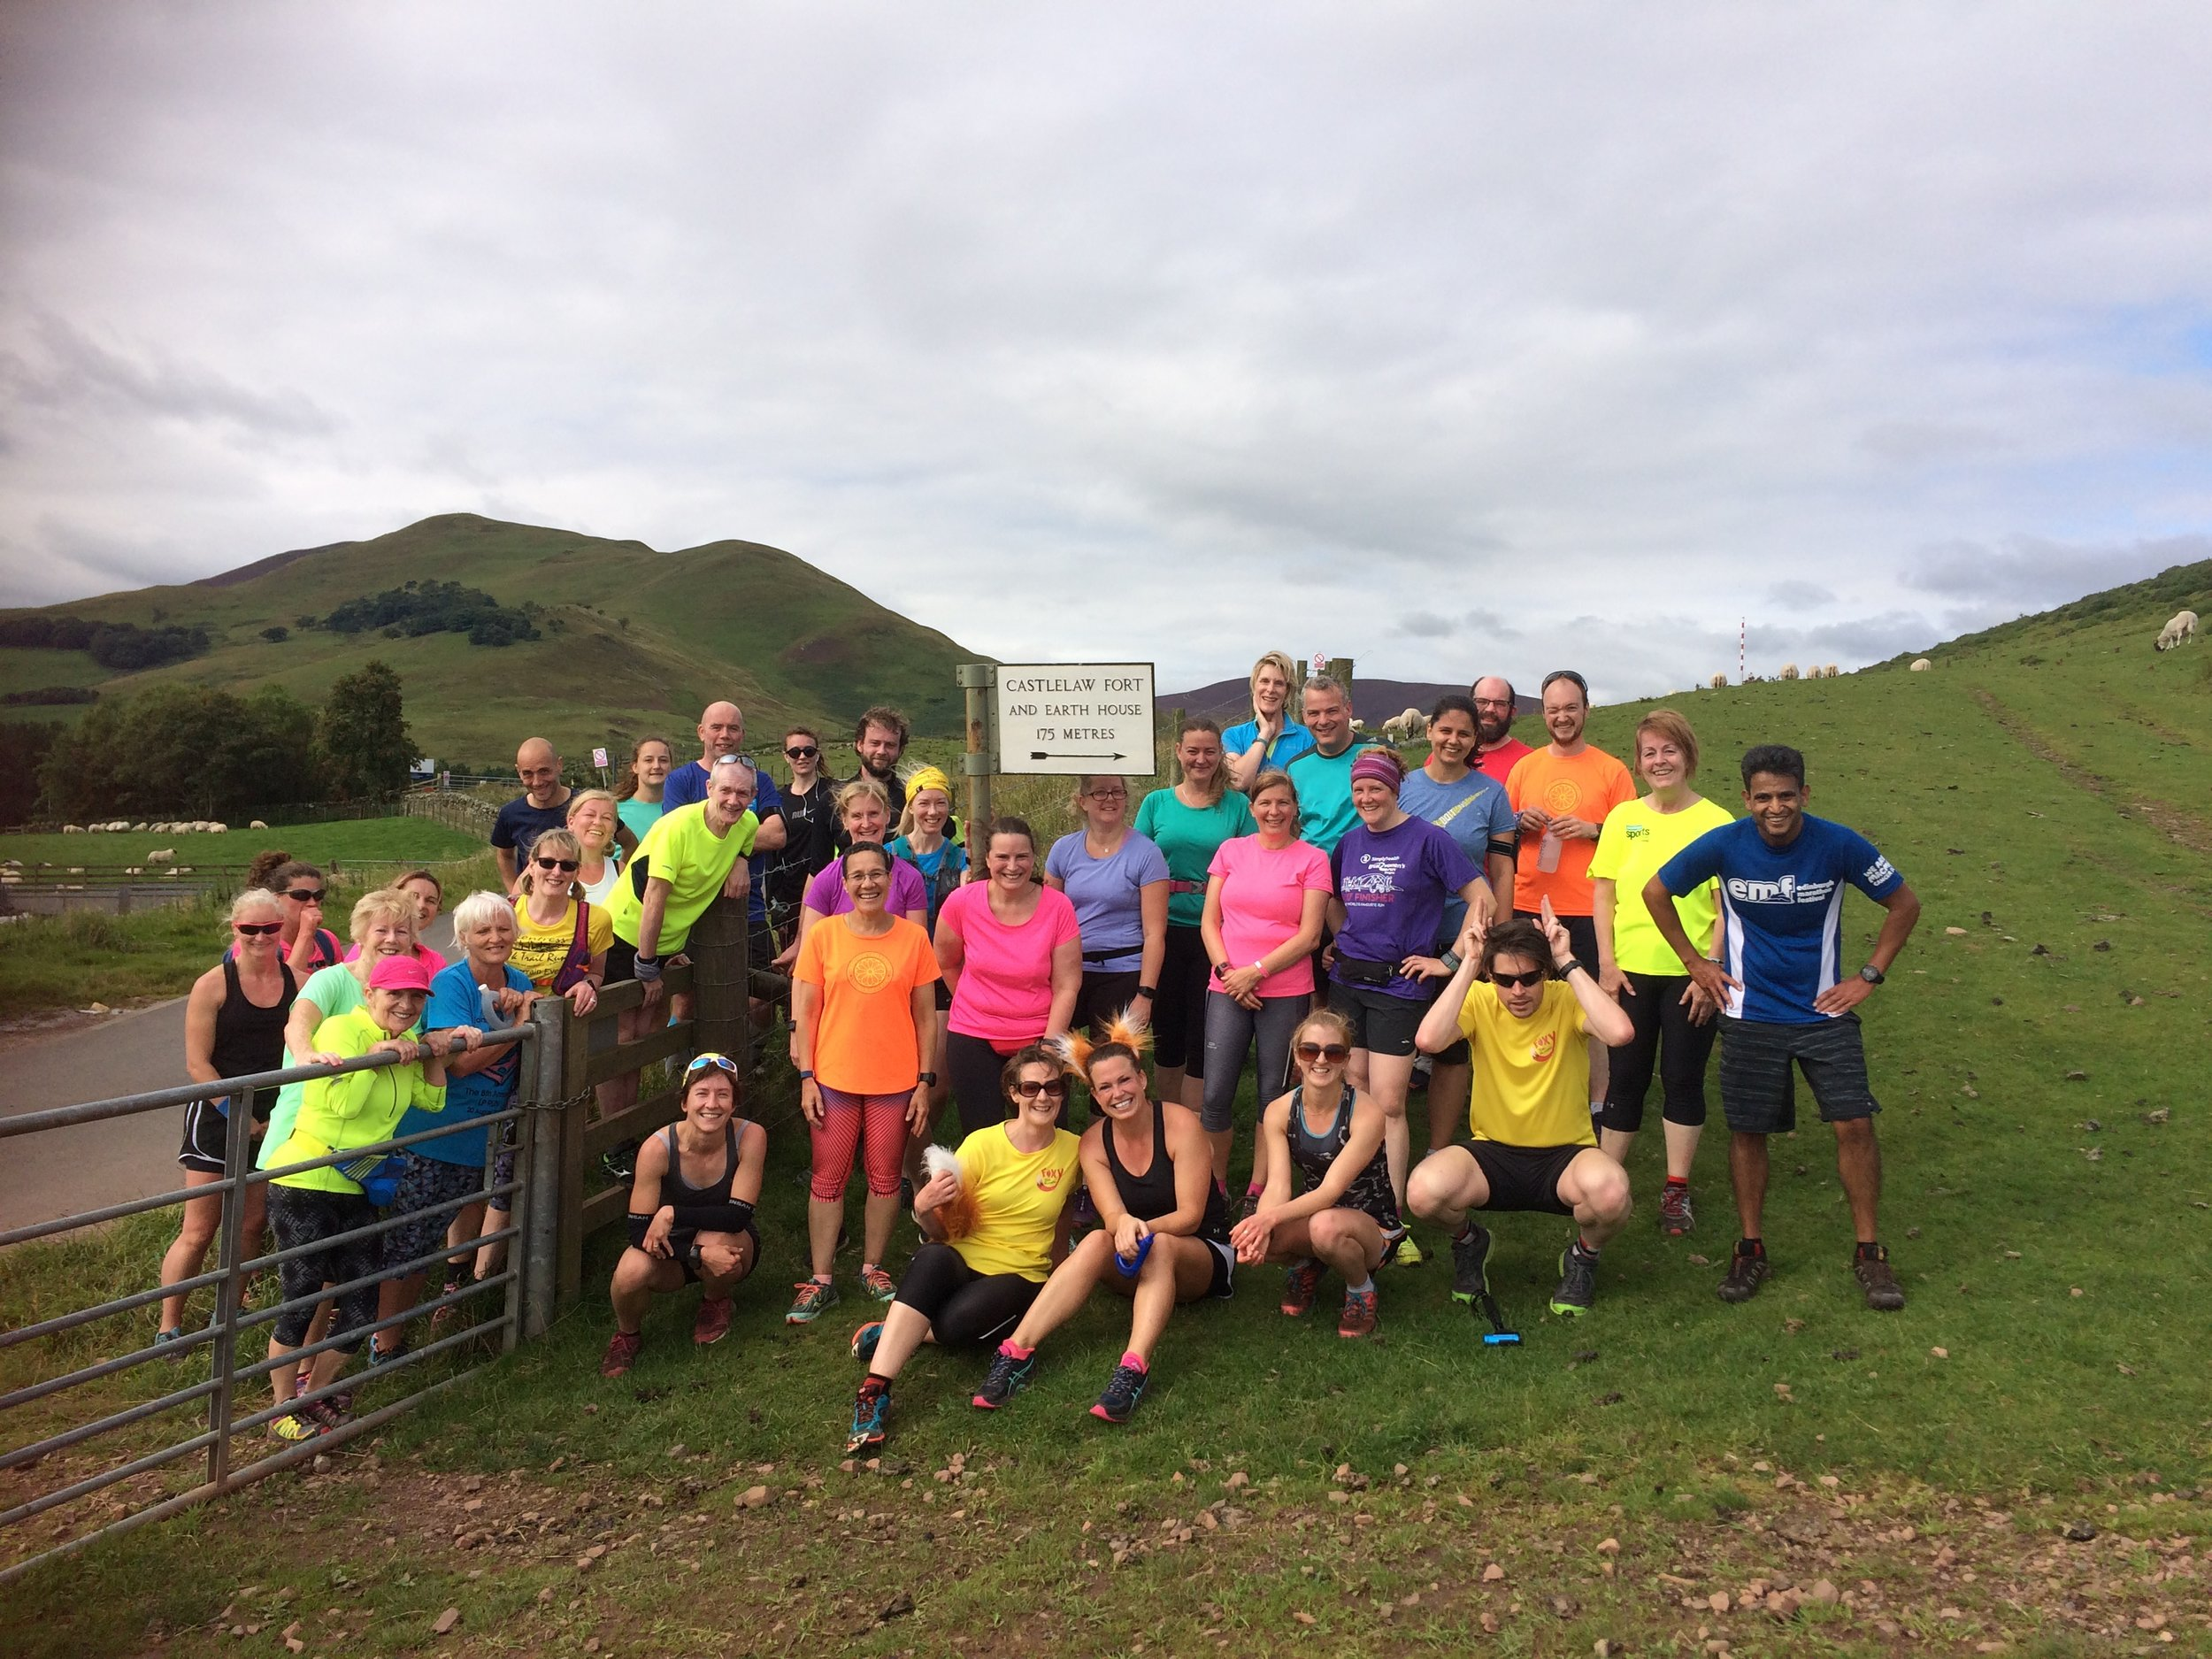 The Foxy Trail Runners crew on a run in the Pentland Hills - everybody welcome